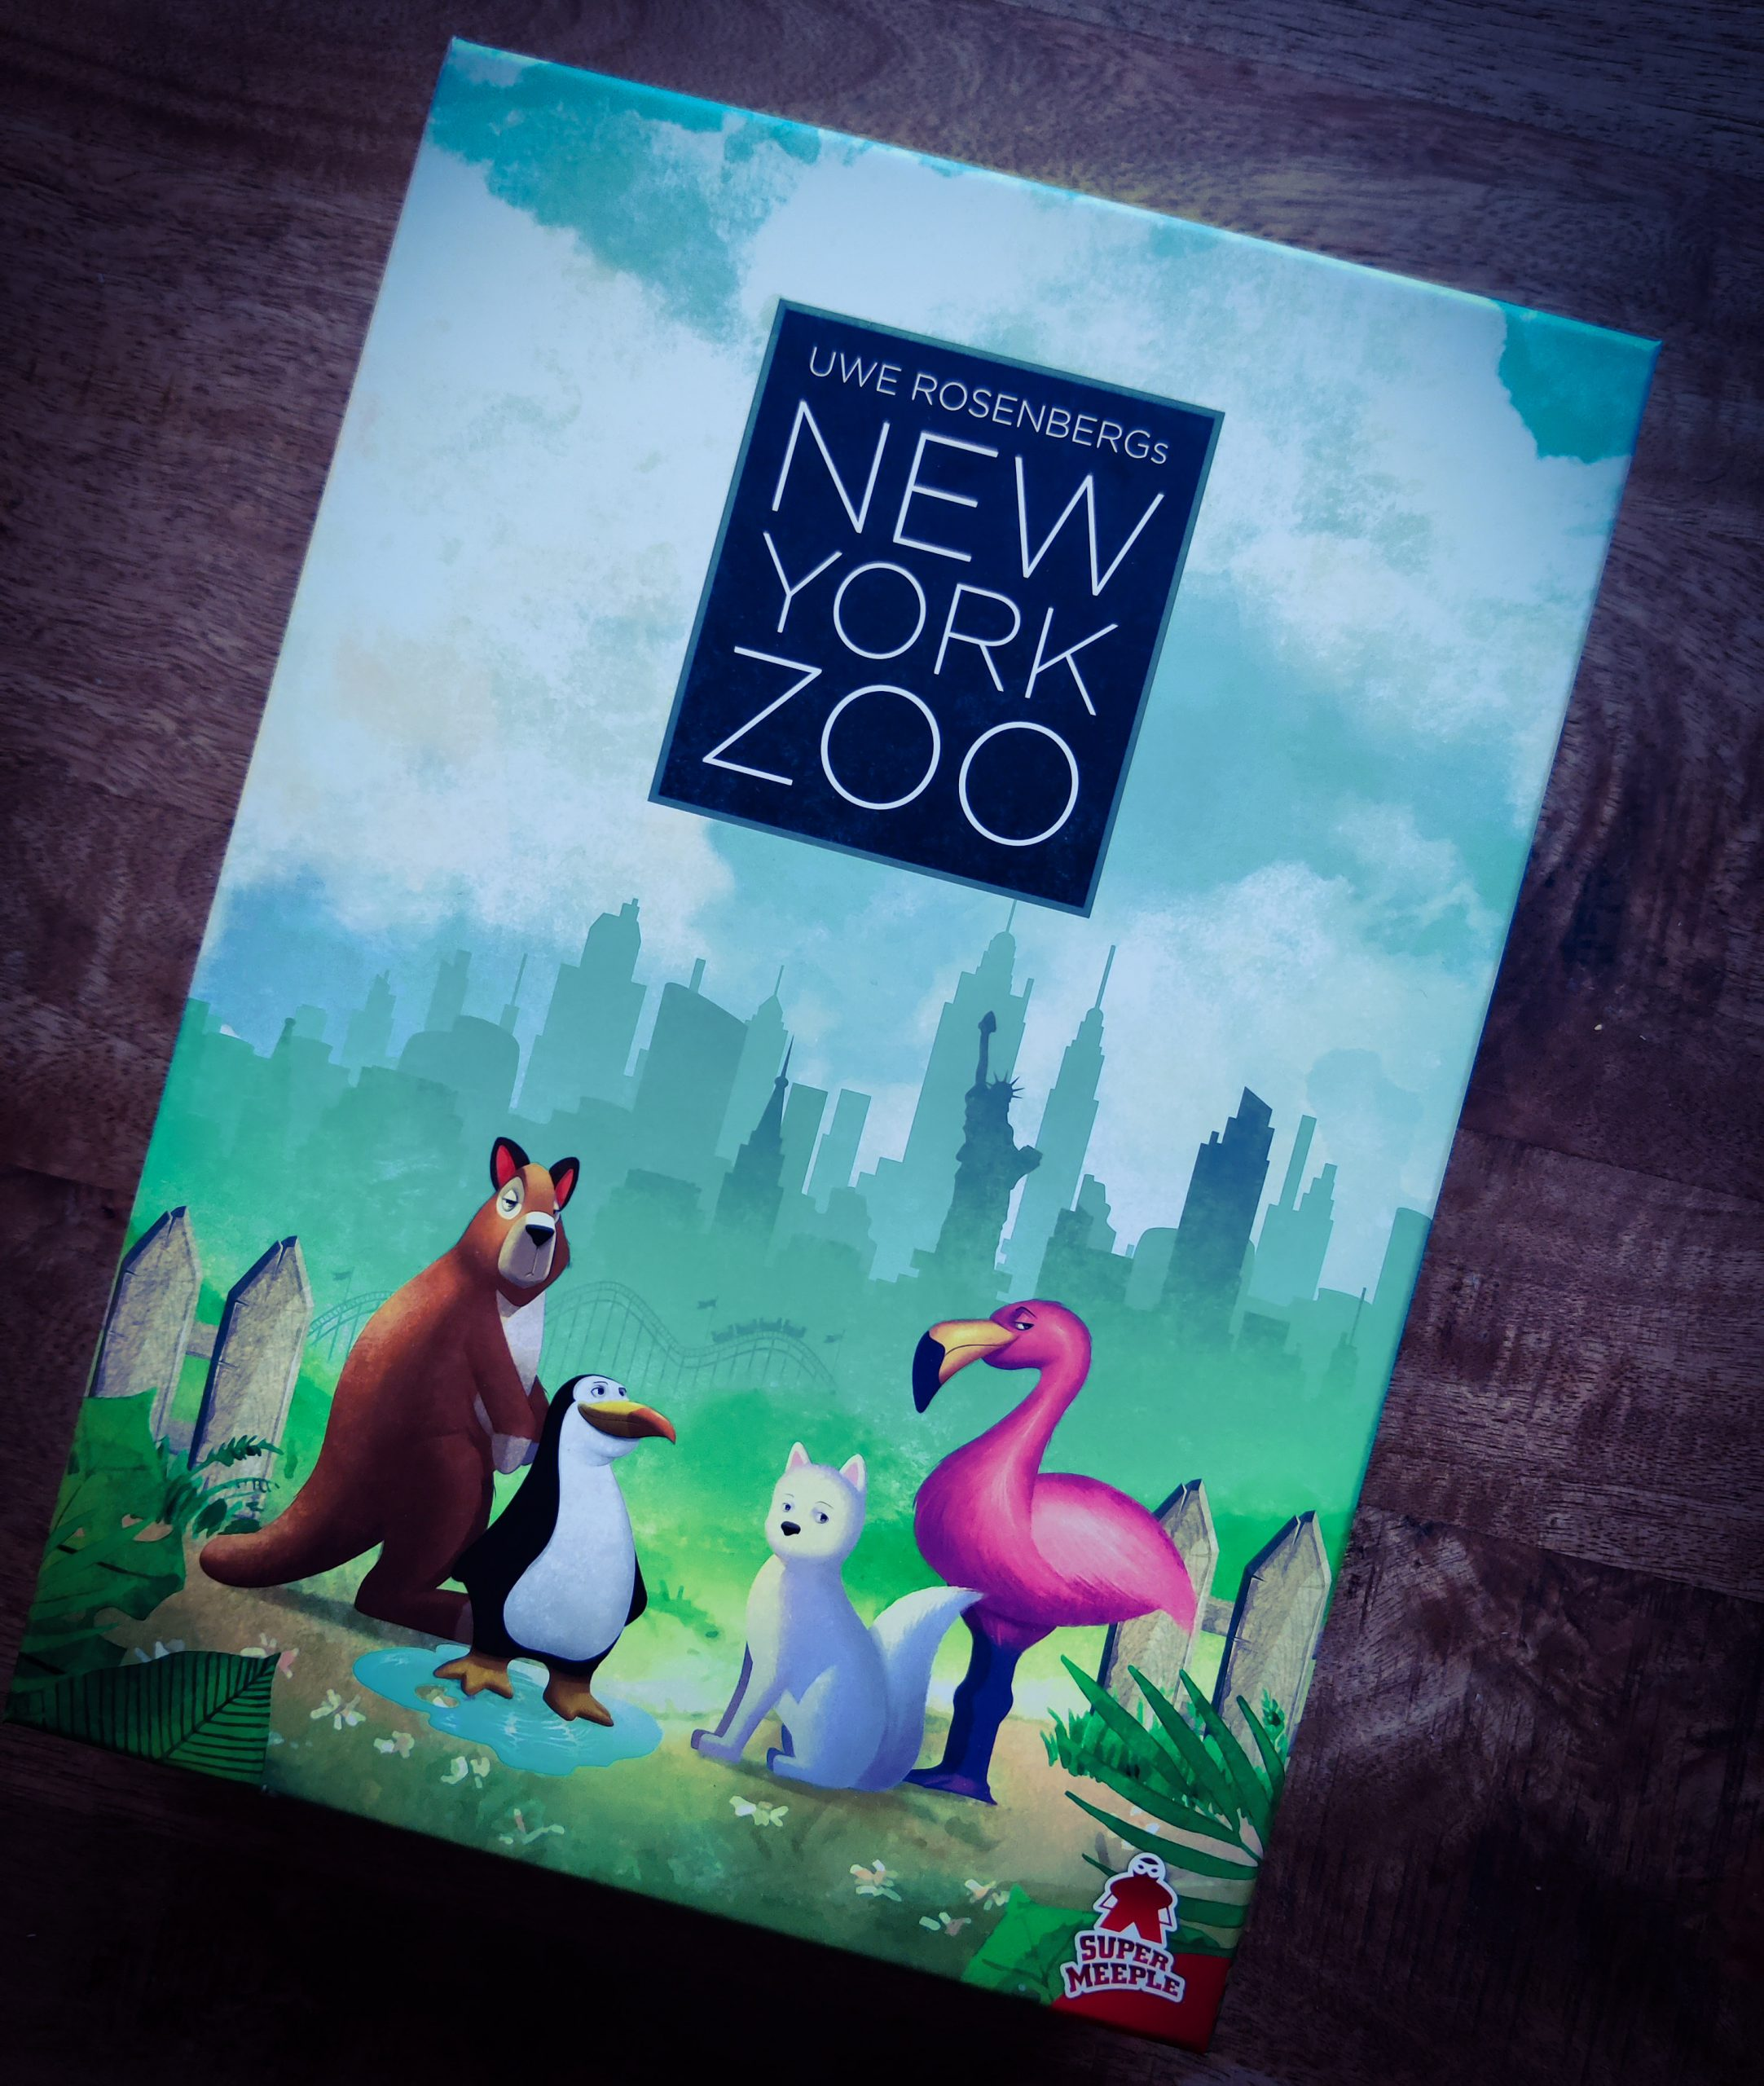 [Test] New York Zoo, une journée au zoo